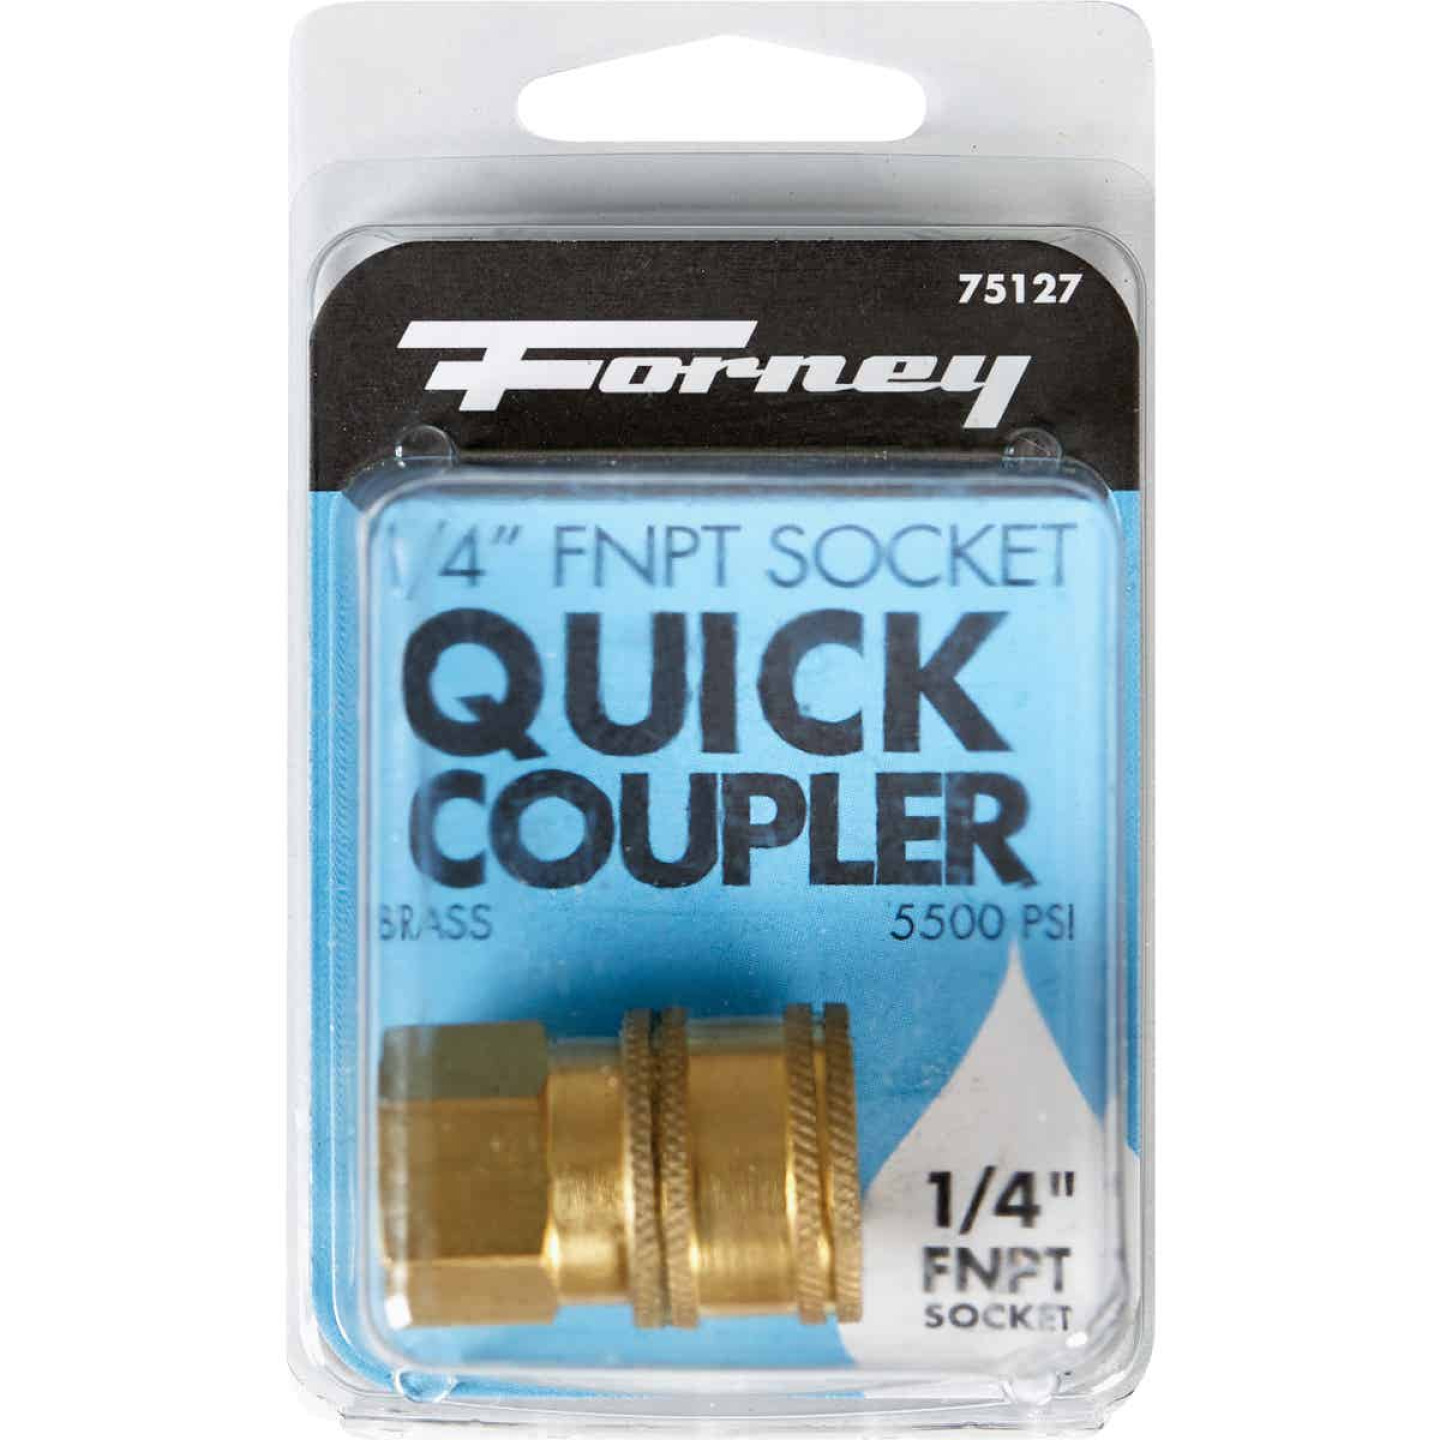 Forney 1/4 In. Female Quick Coupler Pressure Washer Socket Image 2